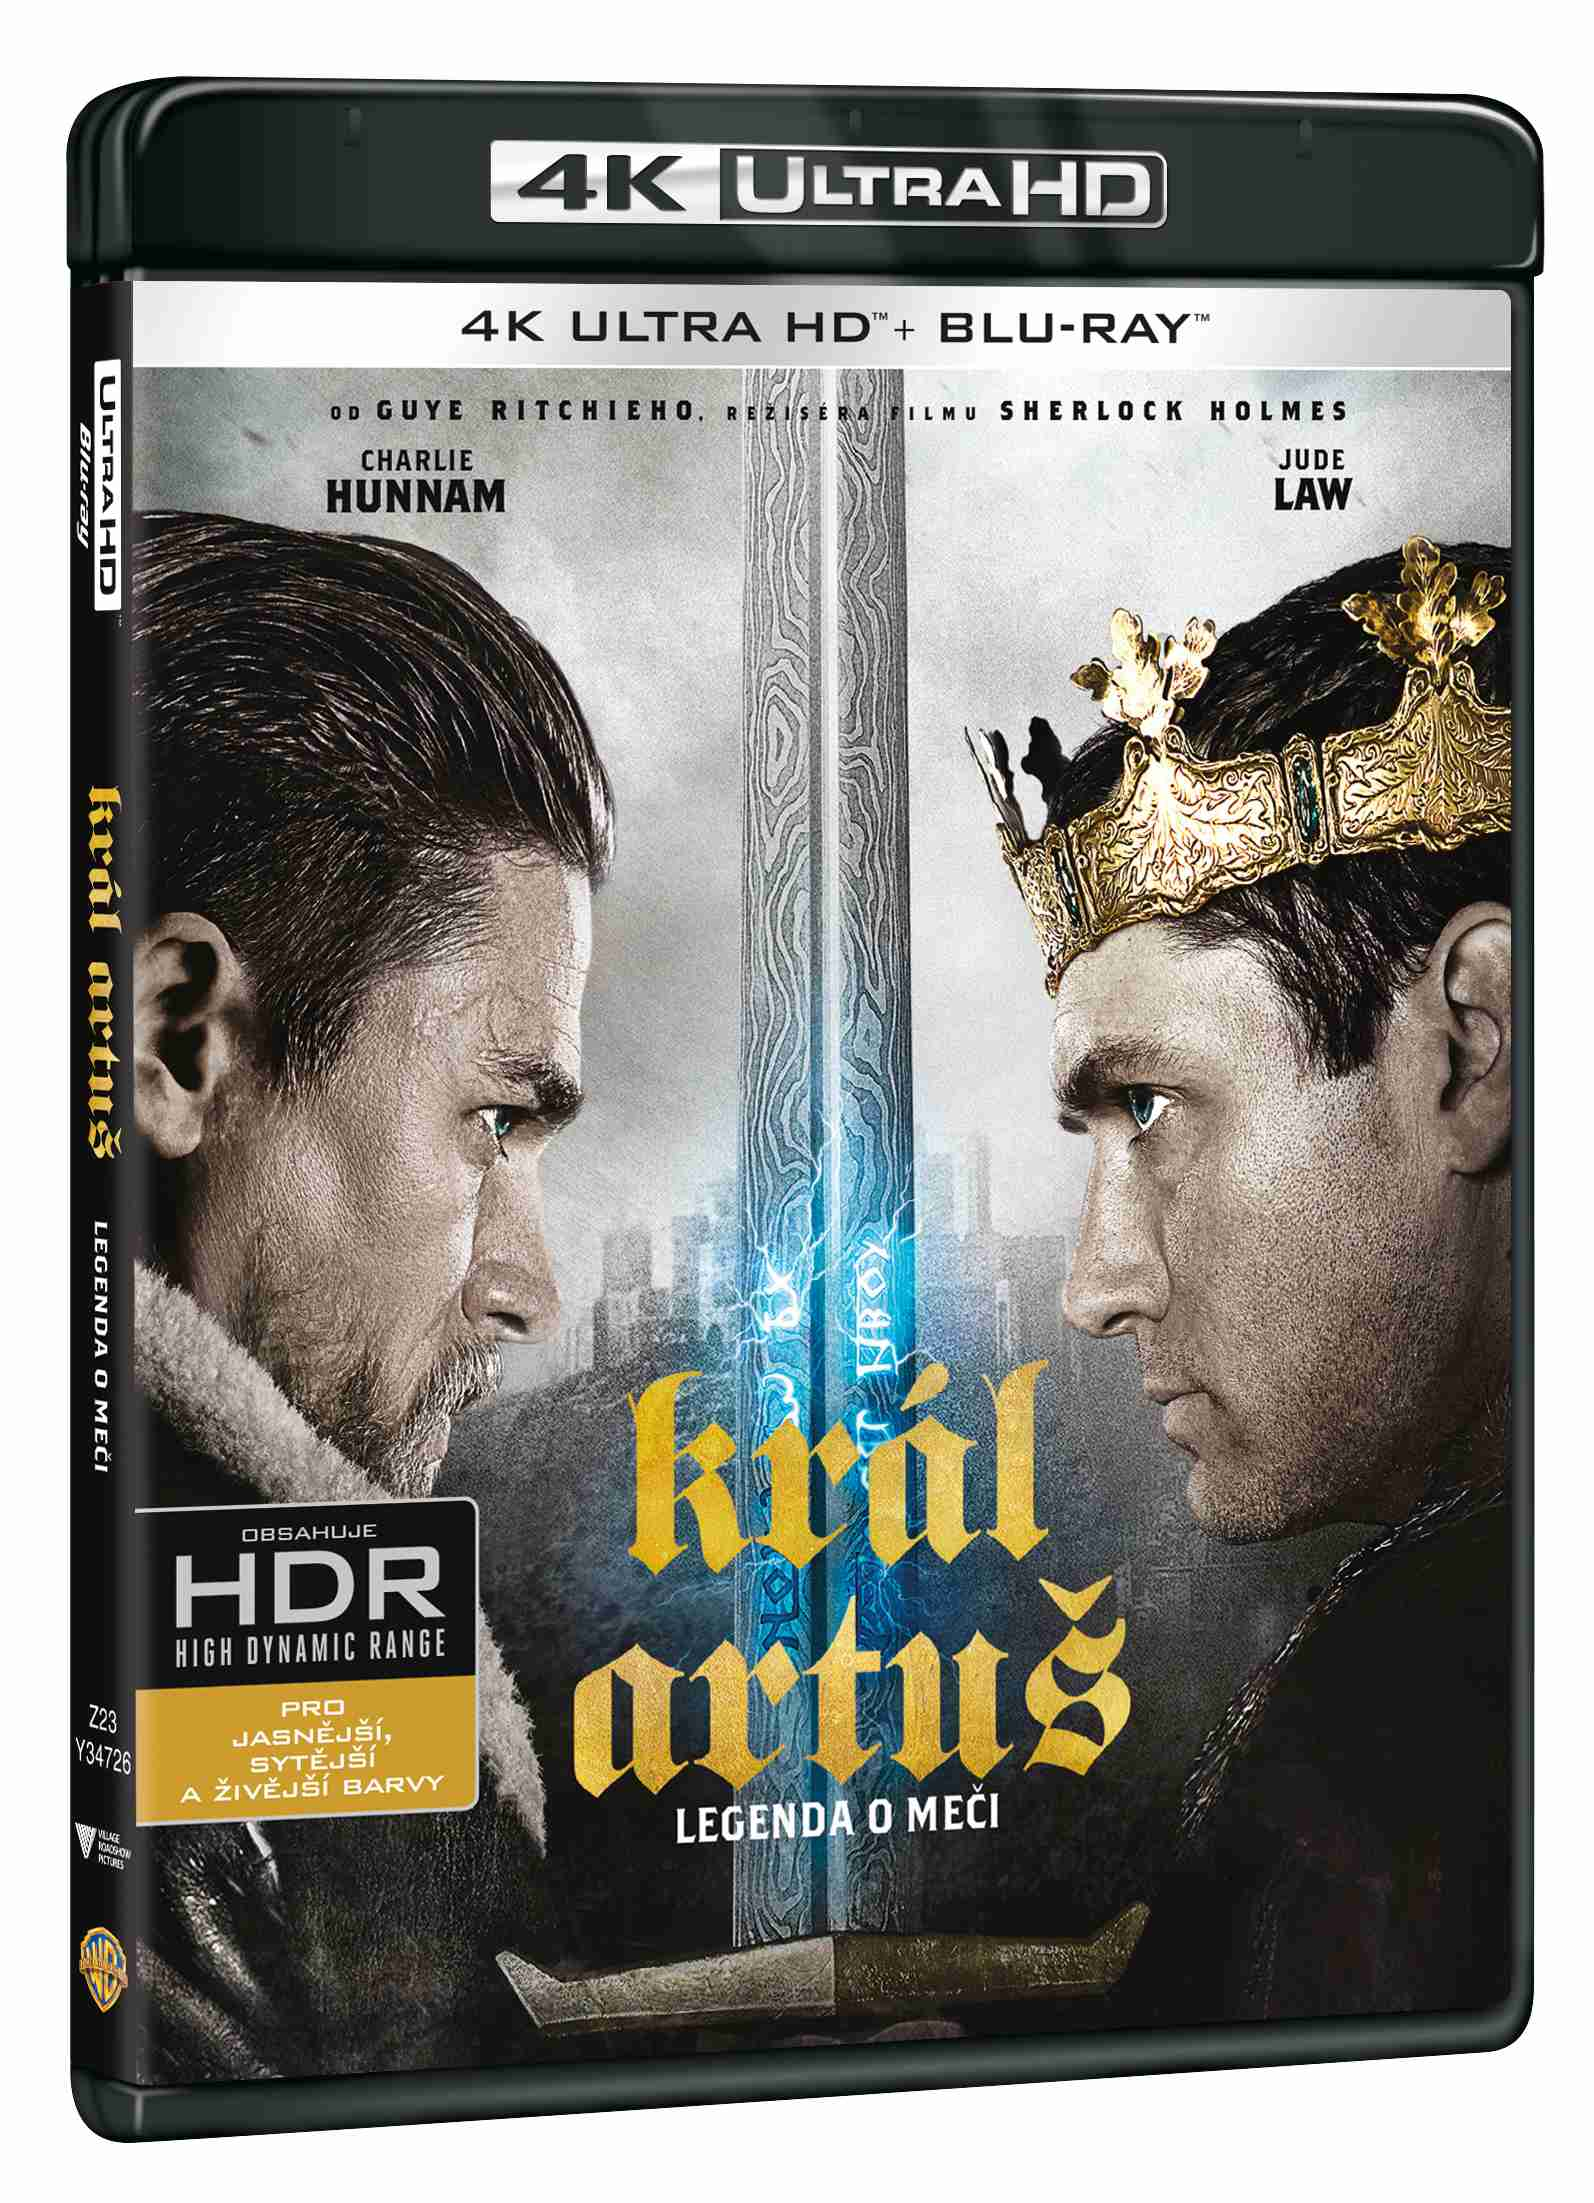 KRÁL ARTUŠ: LEGENDA O MEČI (4K ULTRA HD) - UHD Blu-ray + Bluray (2BD)